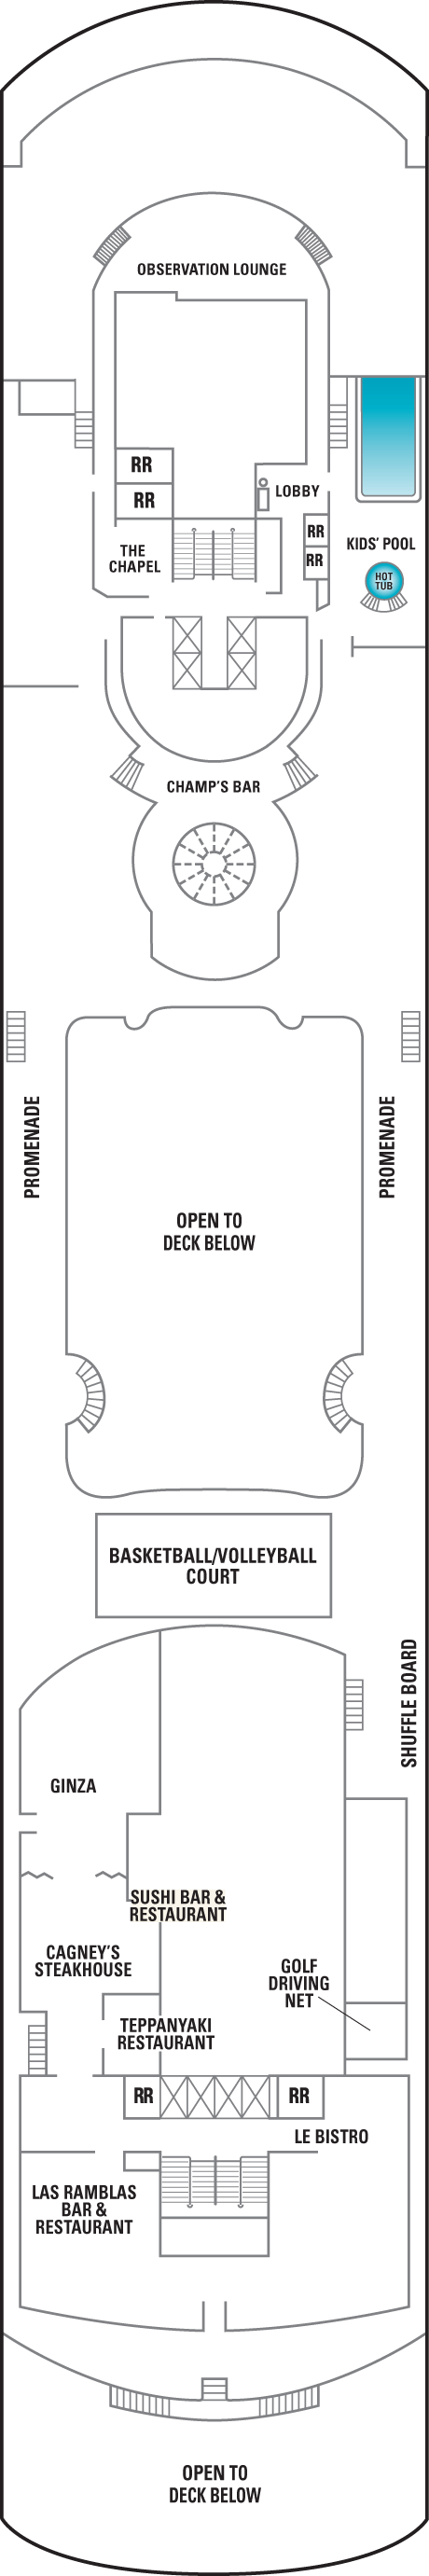 Norwegian Sun Sports Deck layout